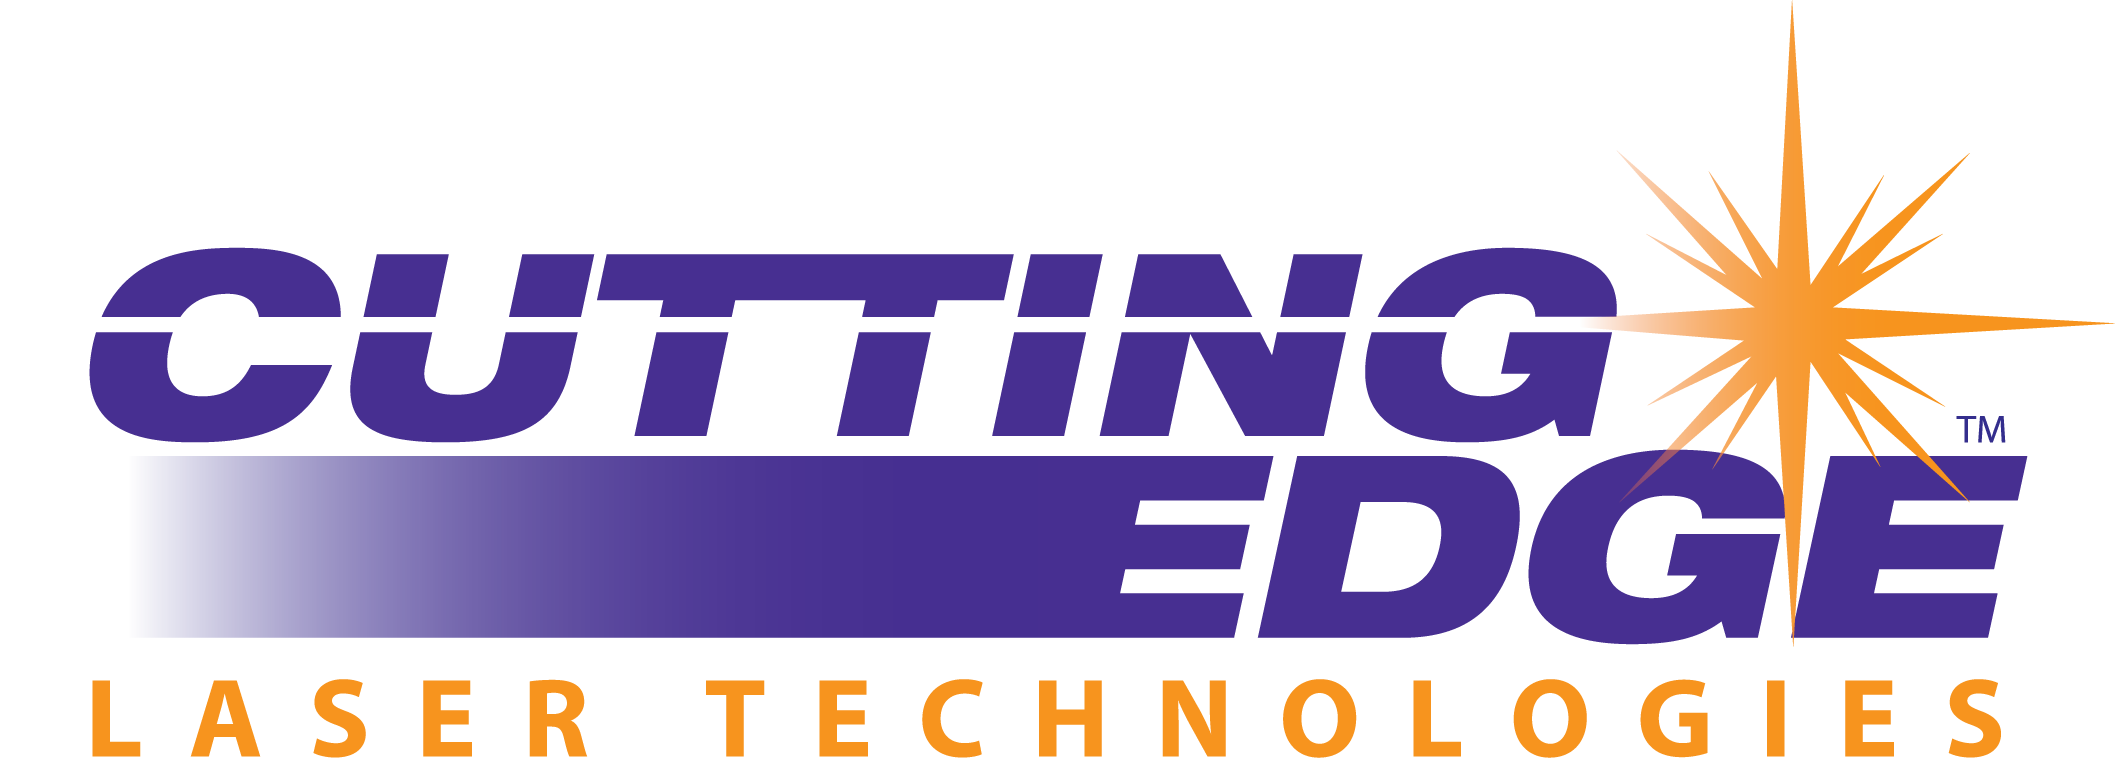 Cutting_Edge_Laser_Logo.png